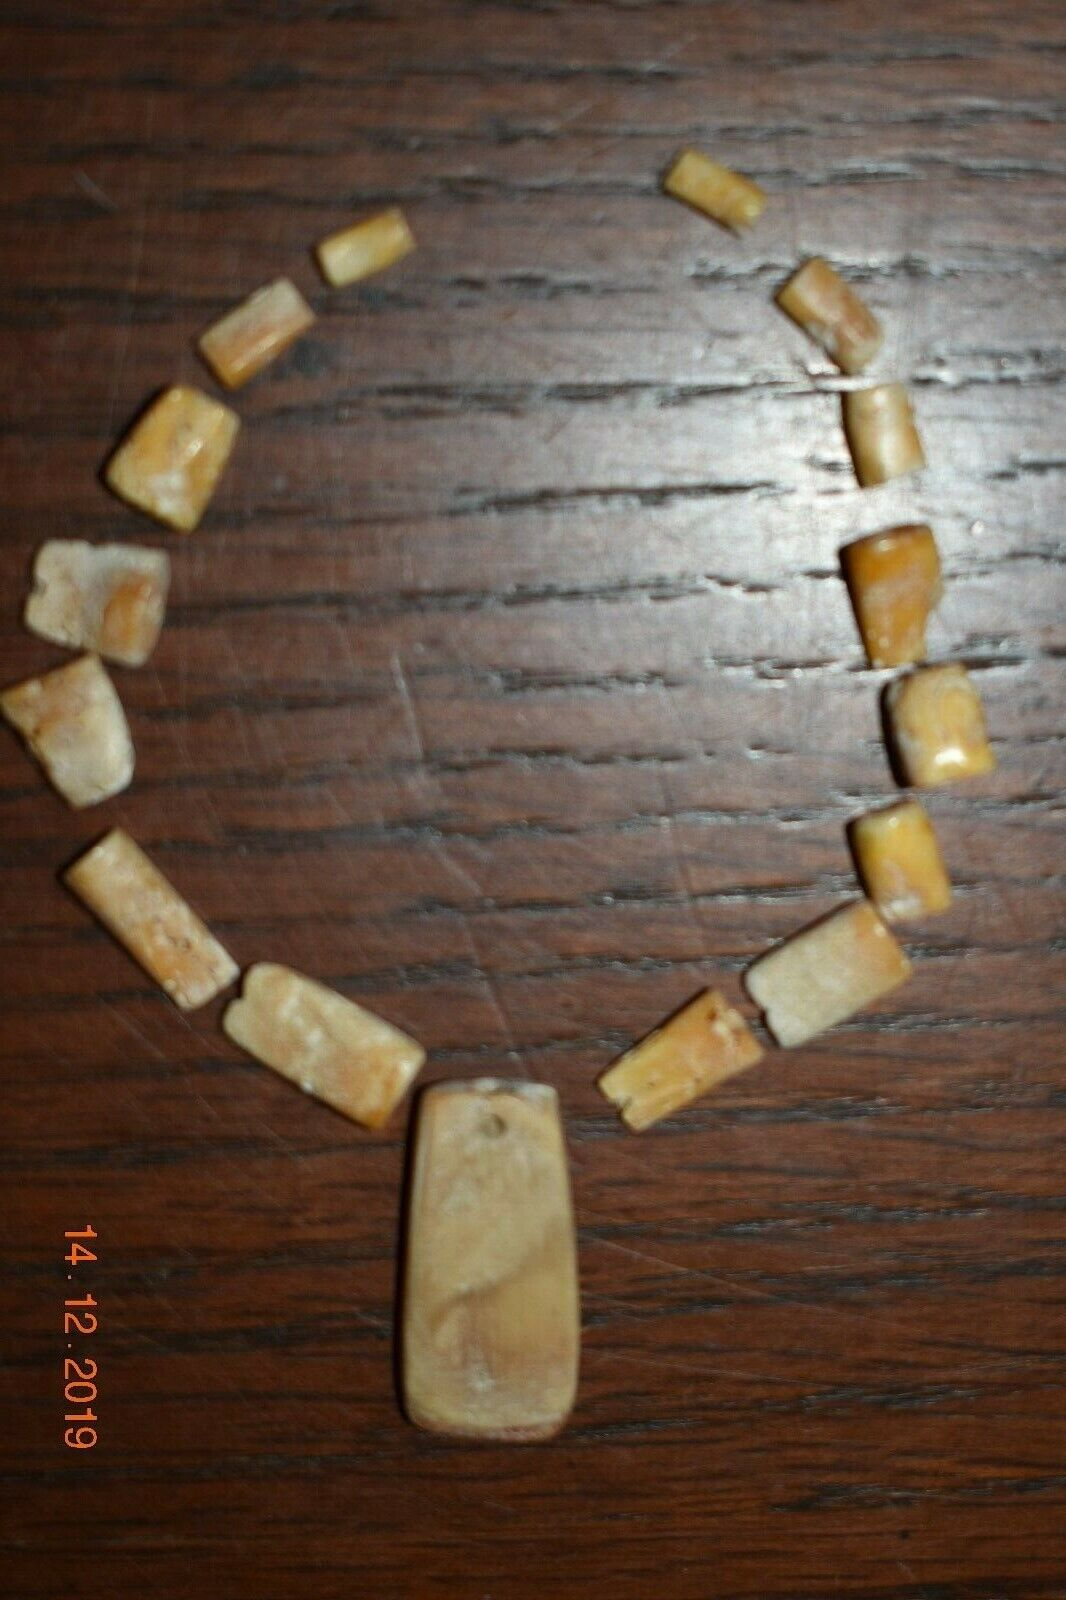 SALE PRE COLUMBIAN MAYAN SHELL NECKLACE, 8 PROV - $199.99